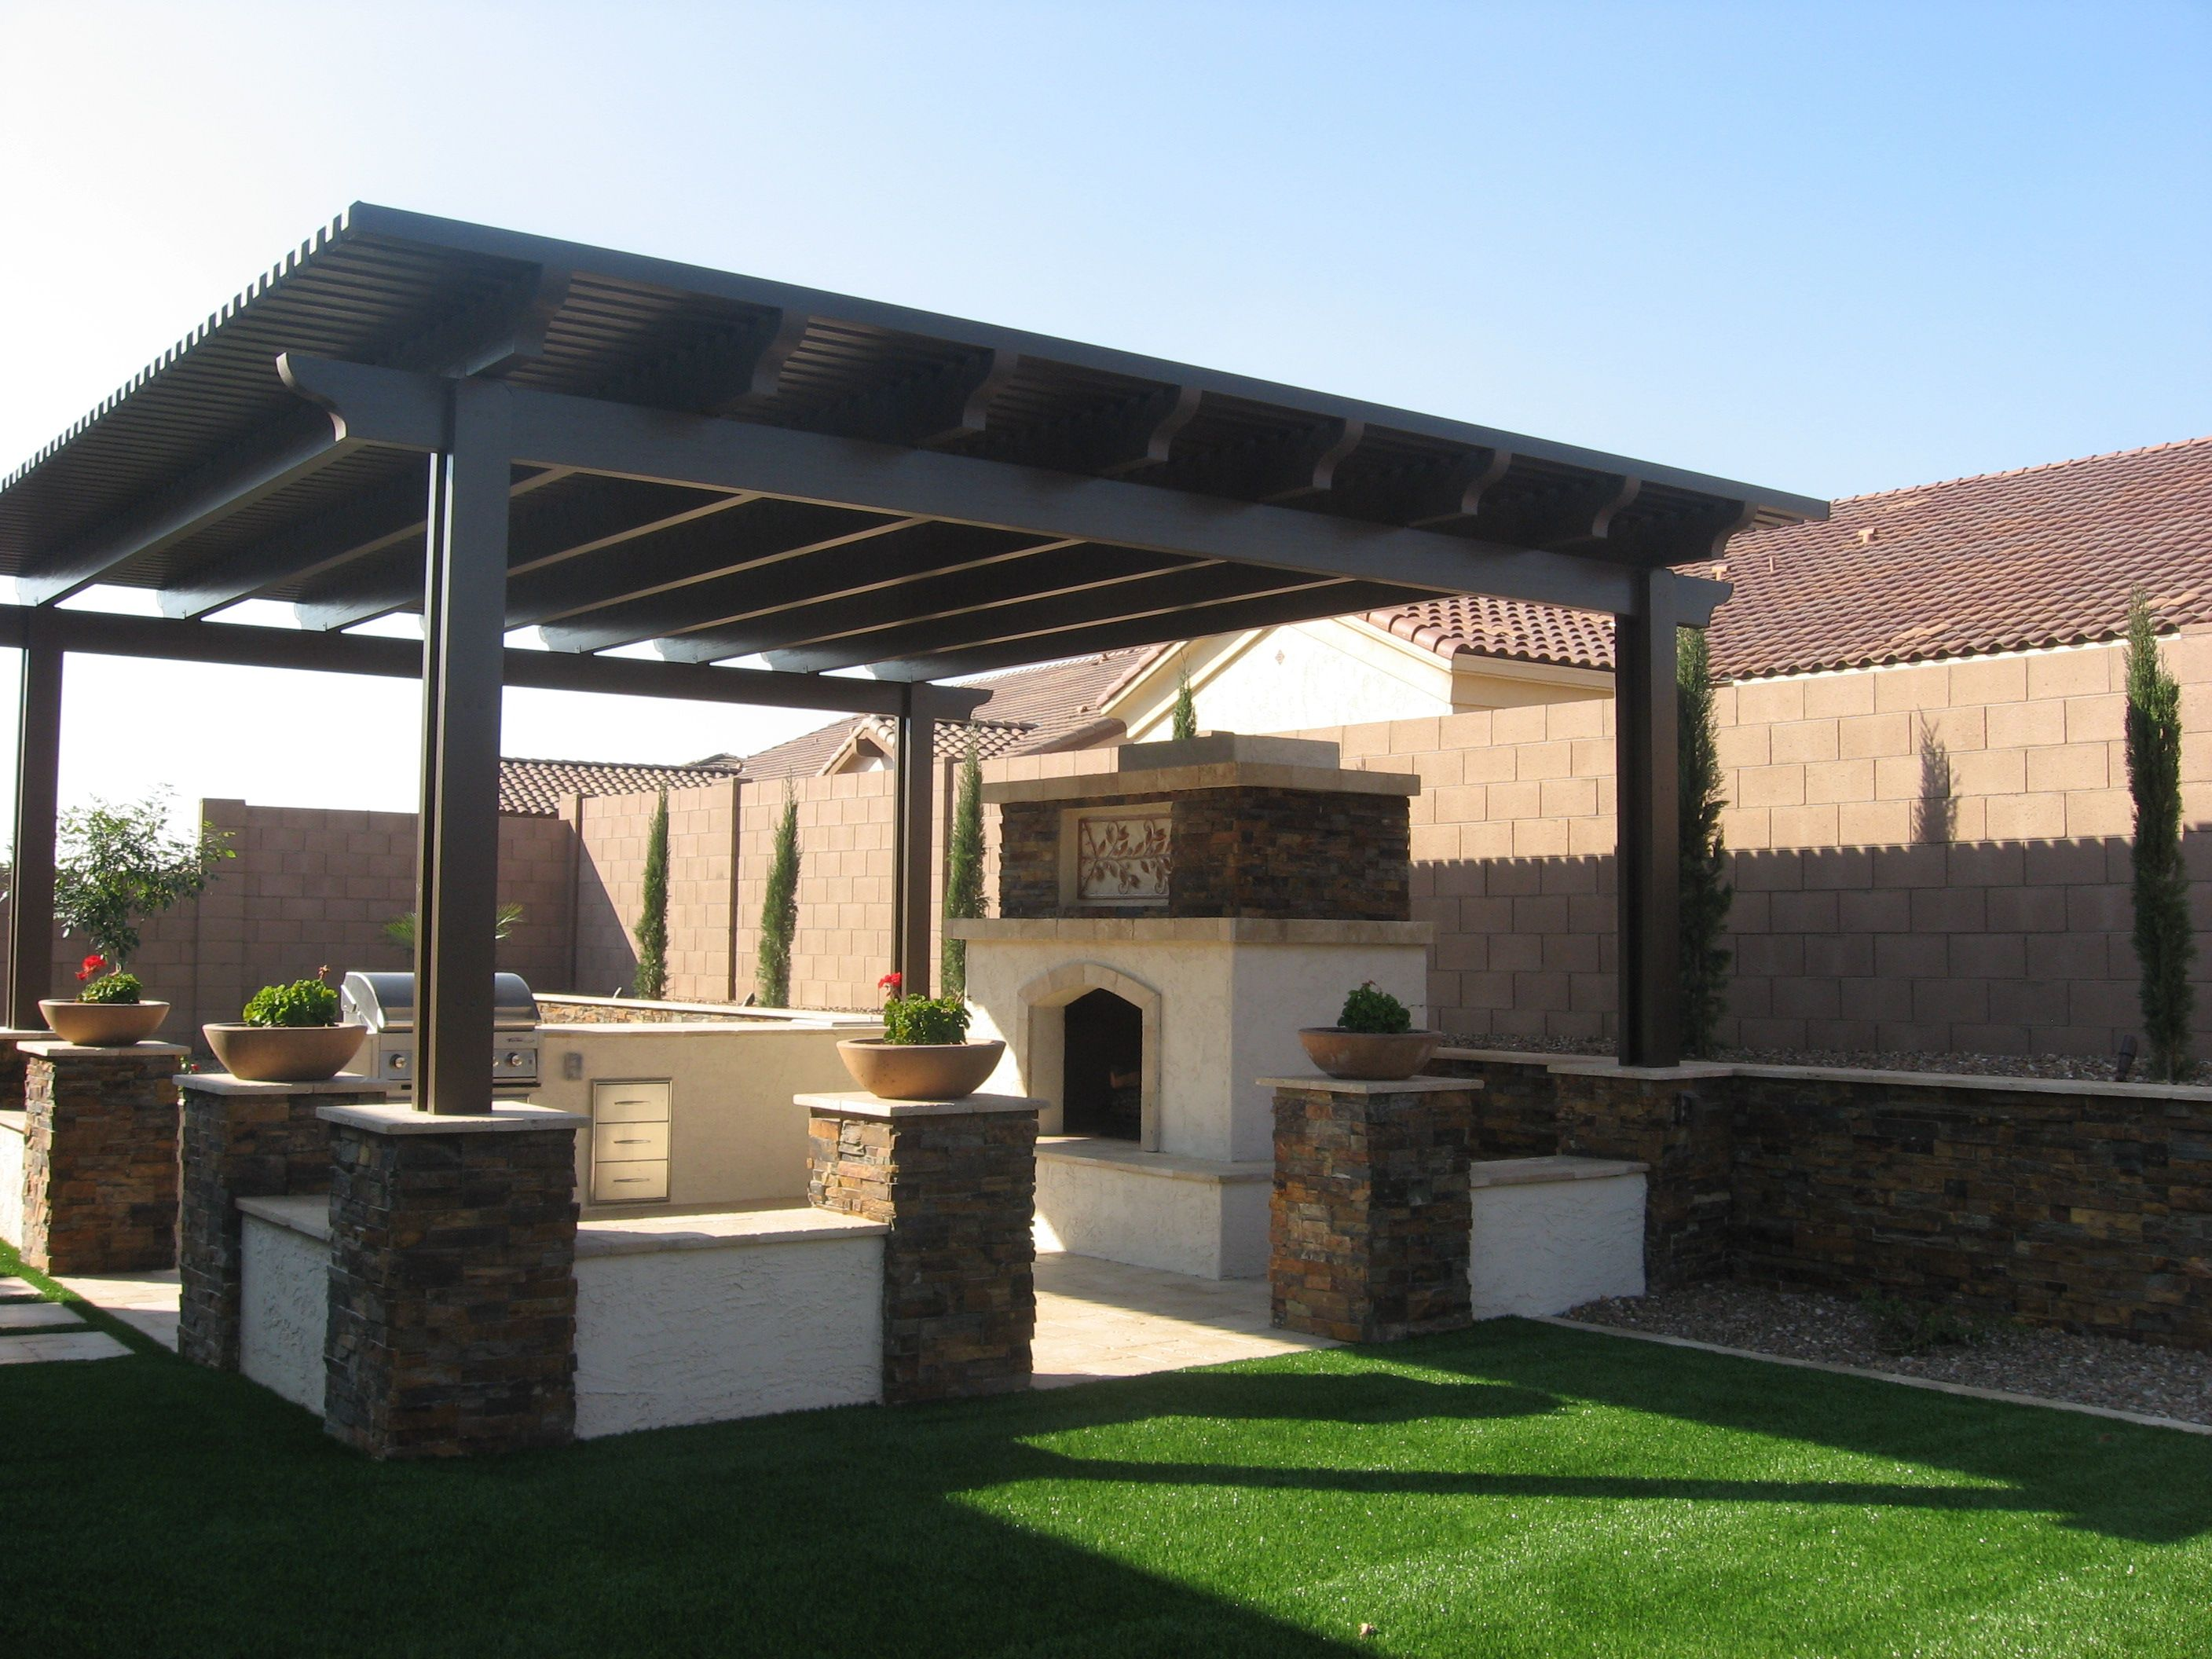 Ramada design plans designed pergolas and gazebos for for Abri mural hardtop gazebo